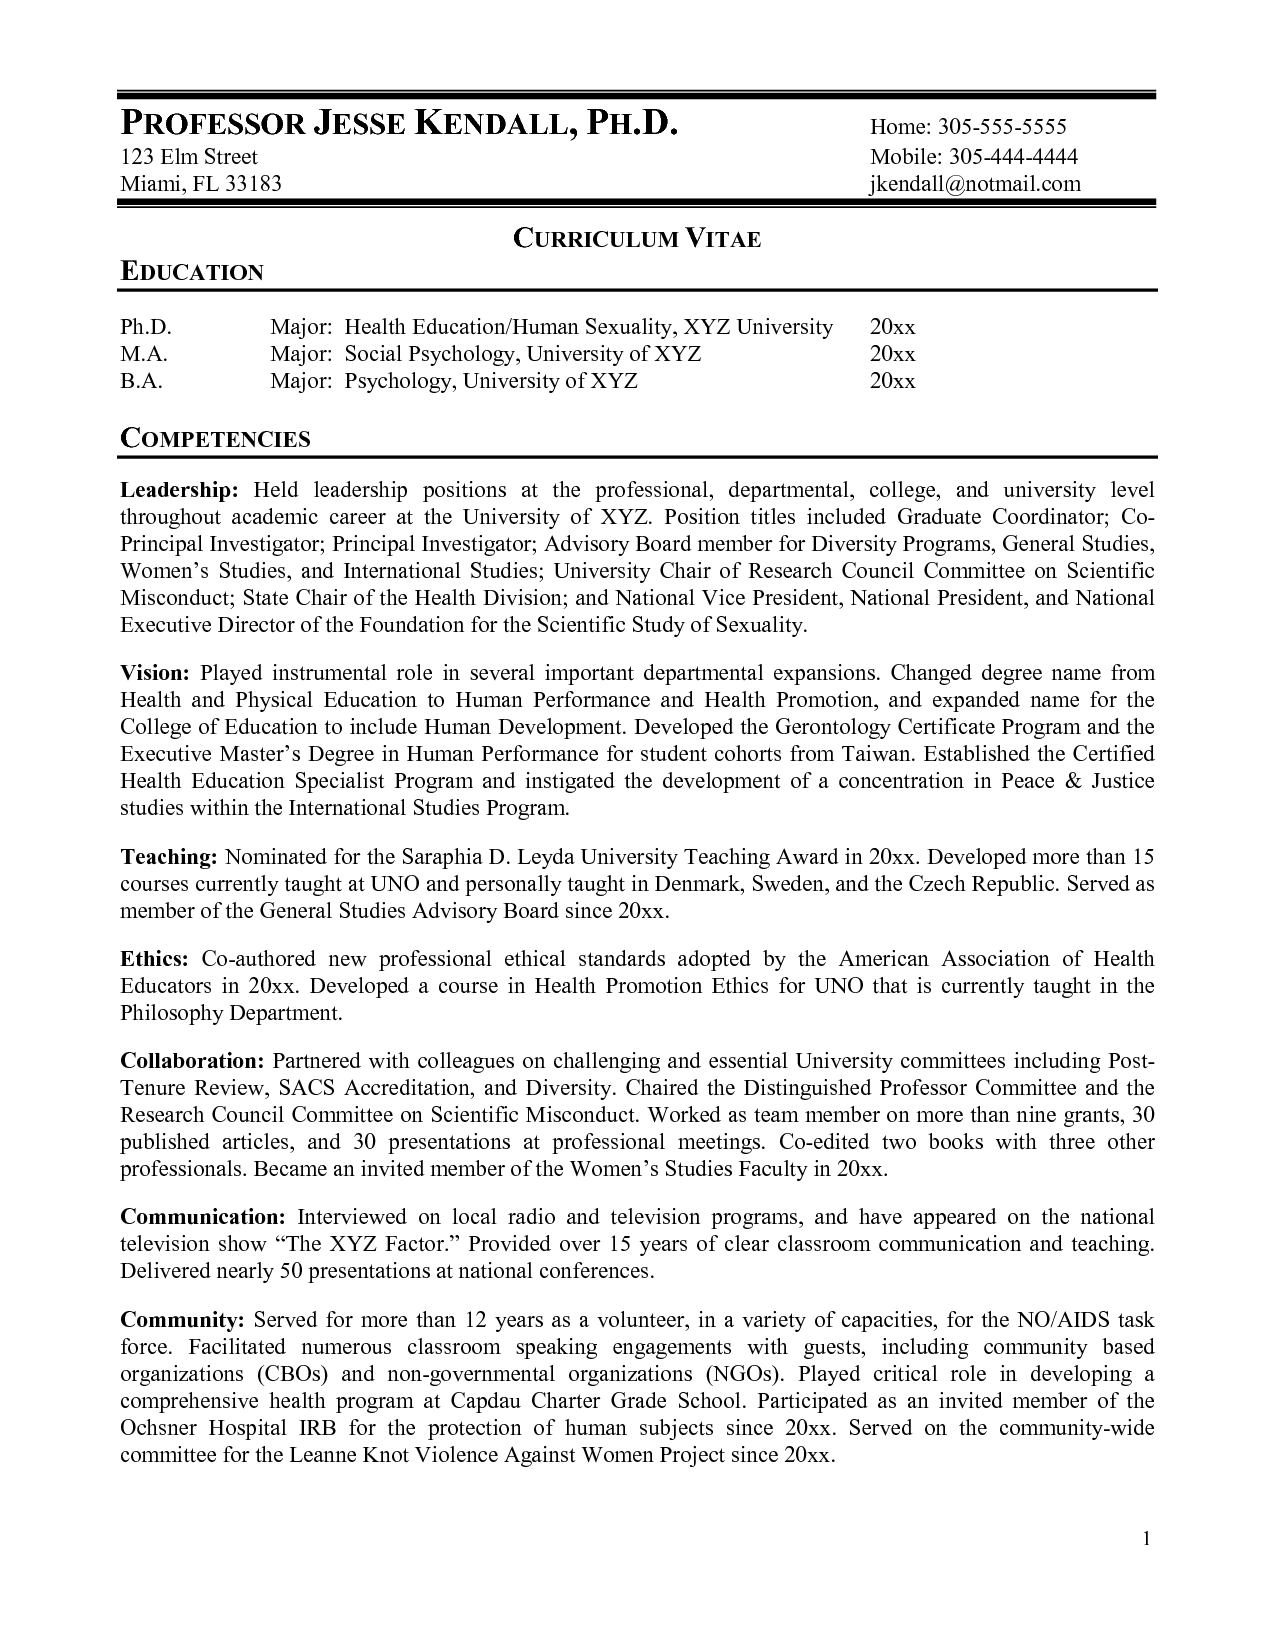 faculty resume sample template faculty resume sample